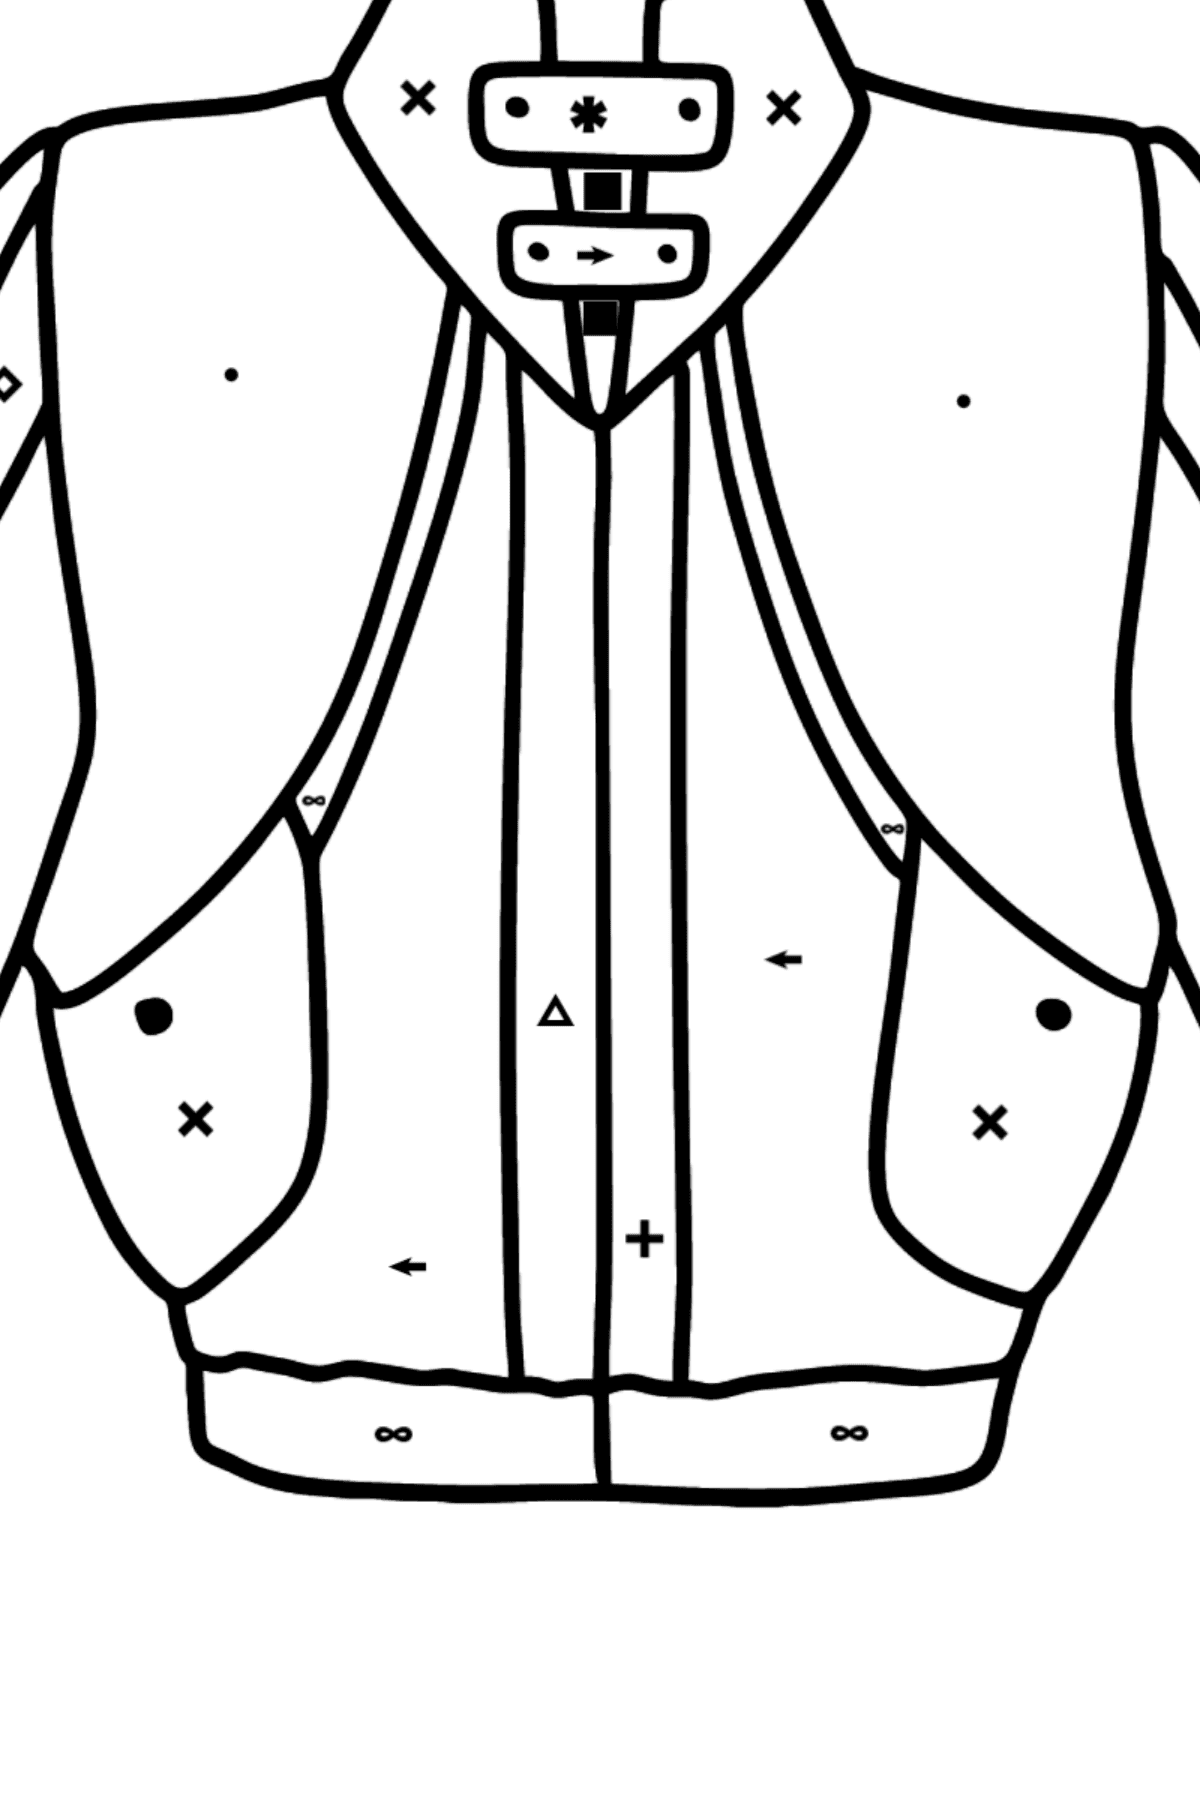 Jacket coloring page - Coloring by Symbols for Kids